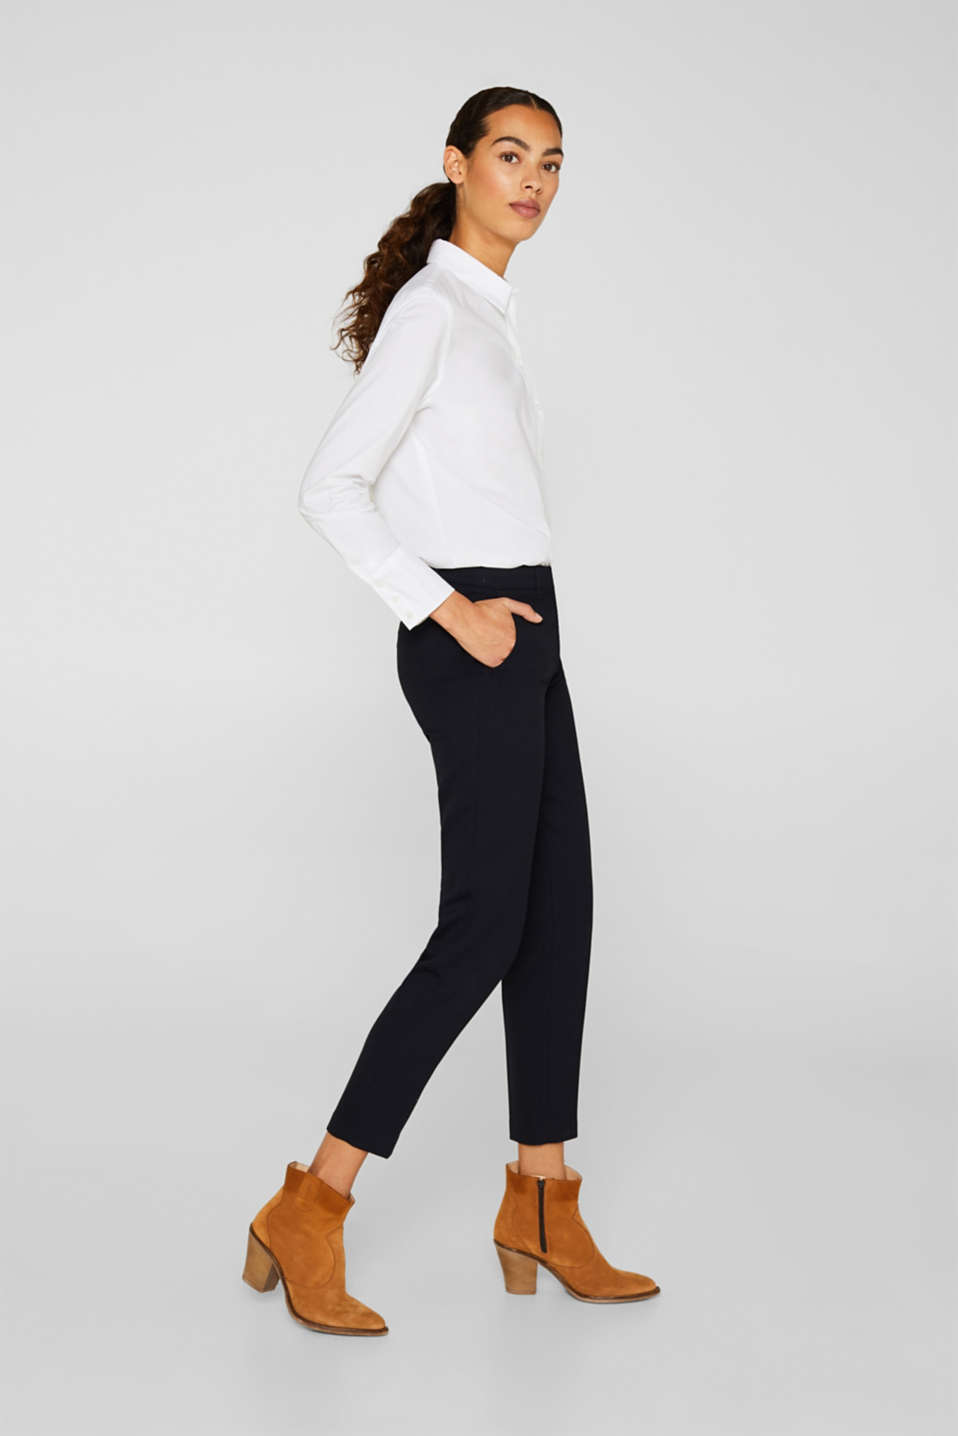 TONE-IN-TONE STRUCTURE Mix + Match Stretch Trousers, NAVY, detail image number 5